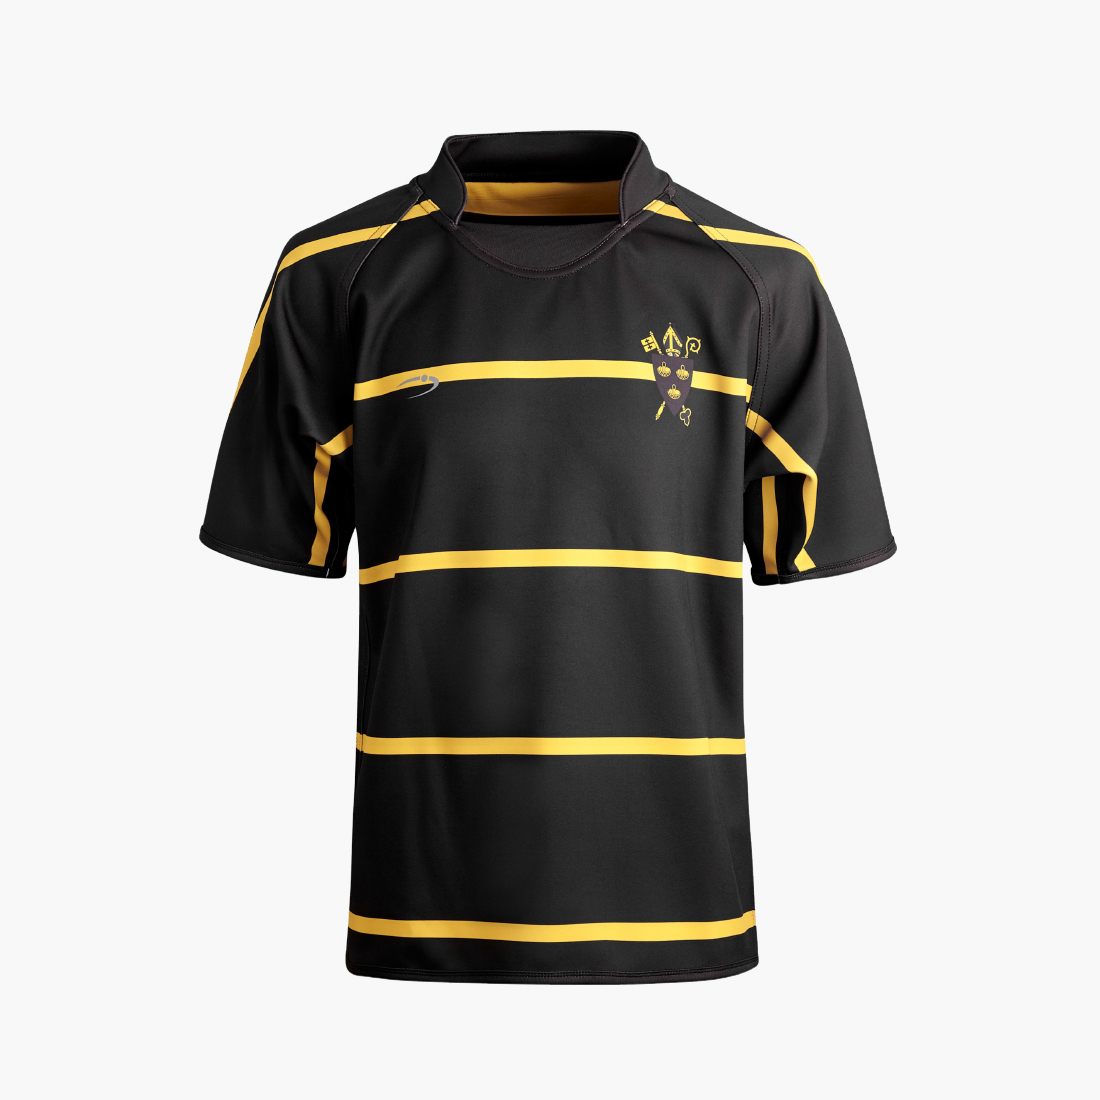 2 WAY STRETCH SUBLIMATED RUGBY SHIRT